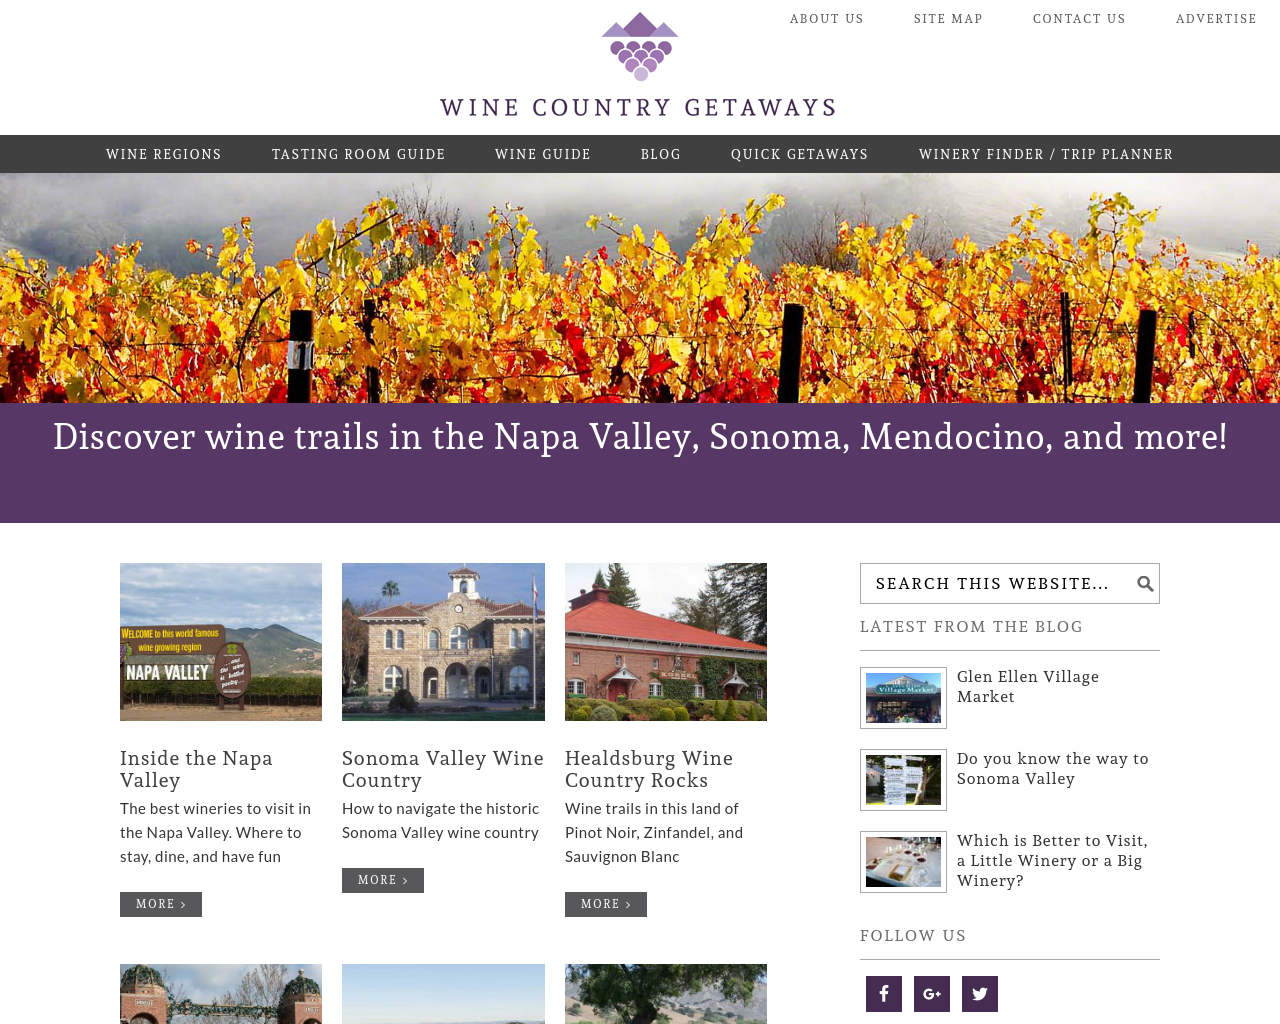 Wine-Country-Getaways-Advertising-Reviews-Pricing